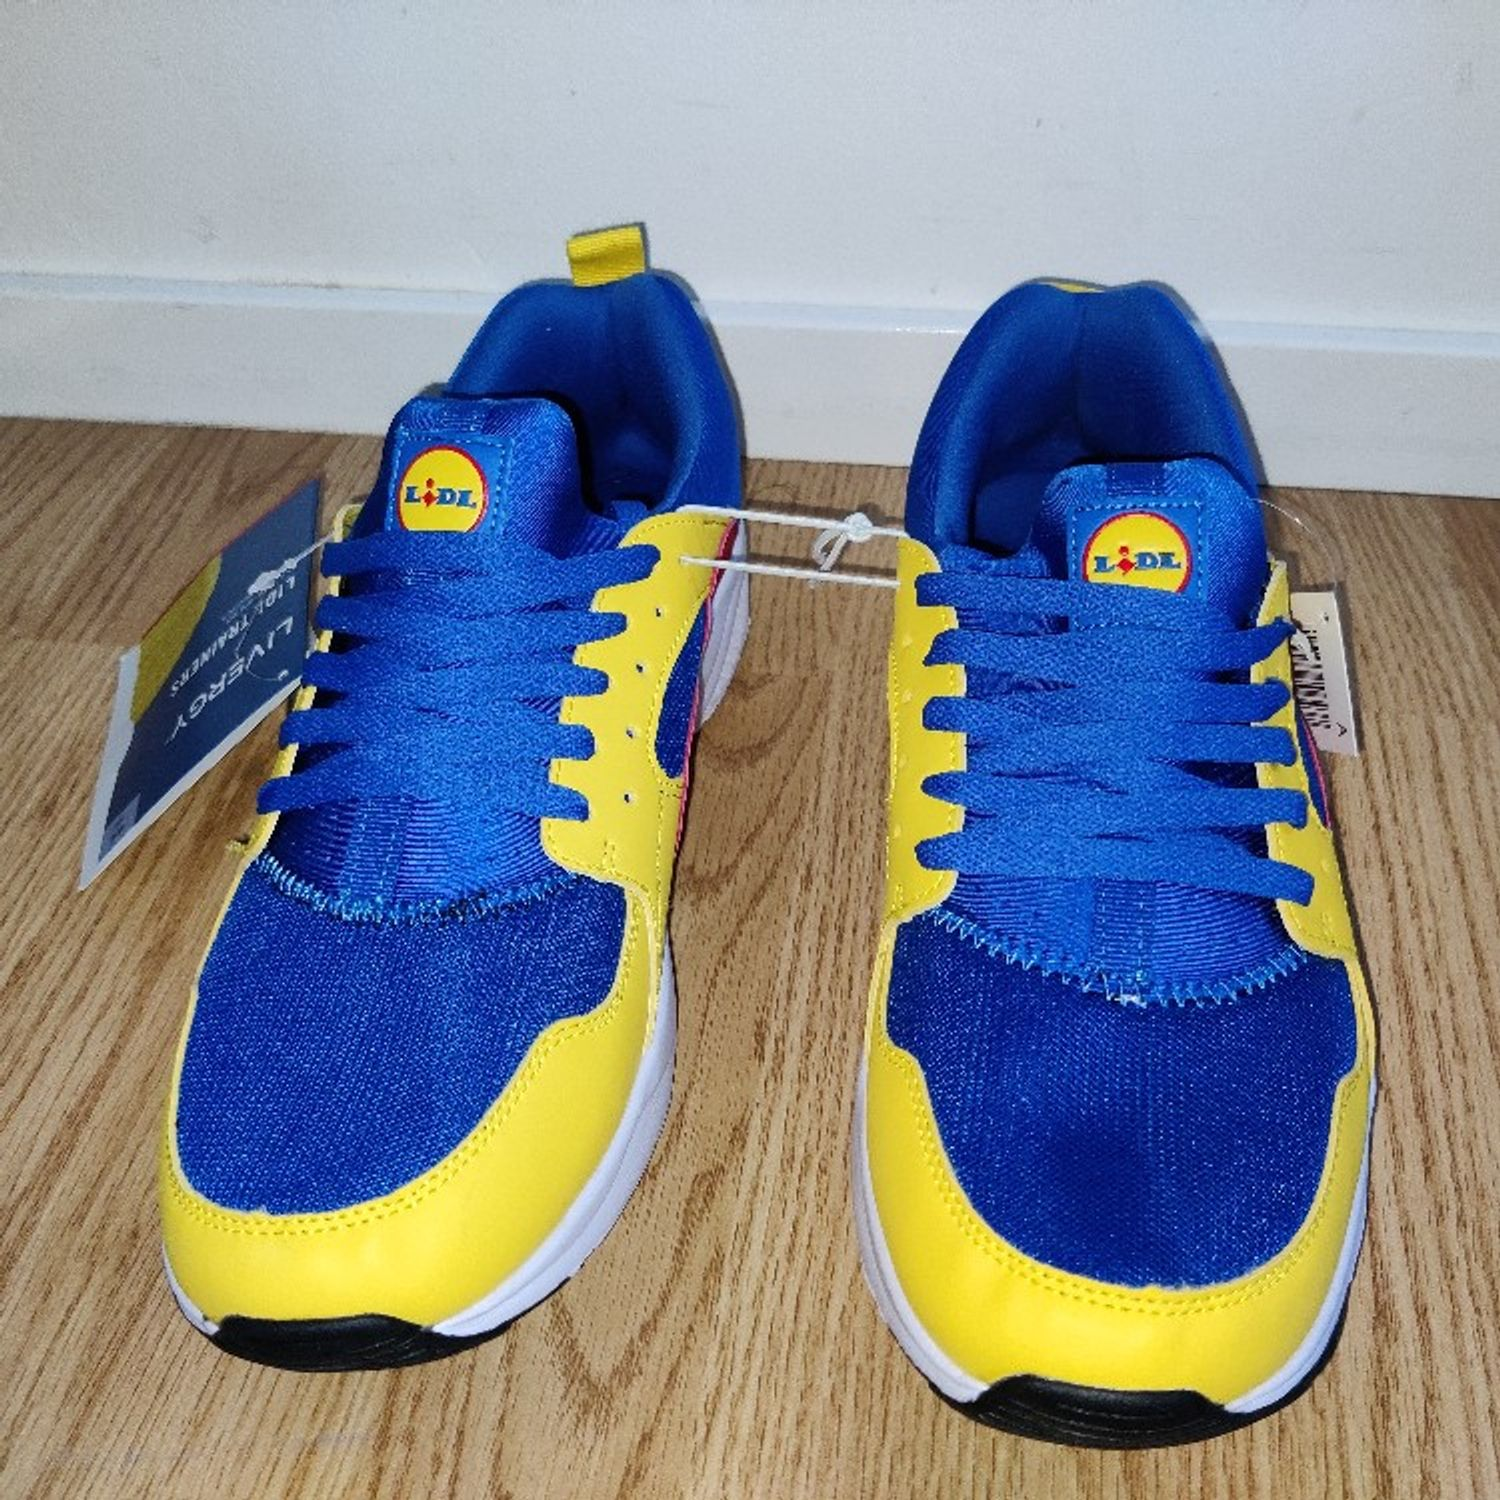 Desgracia infancia analizar  [LIMITED LIDL FAN COLLECTION] - Lidl x Livergy Trainers